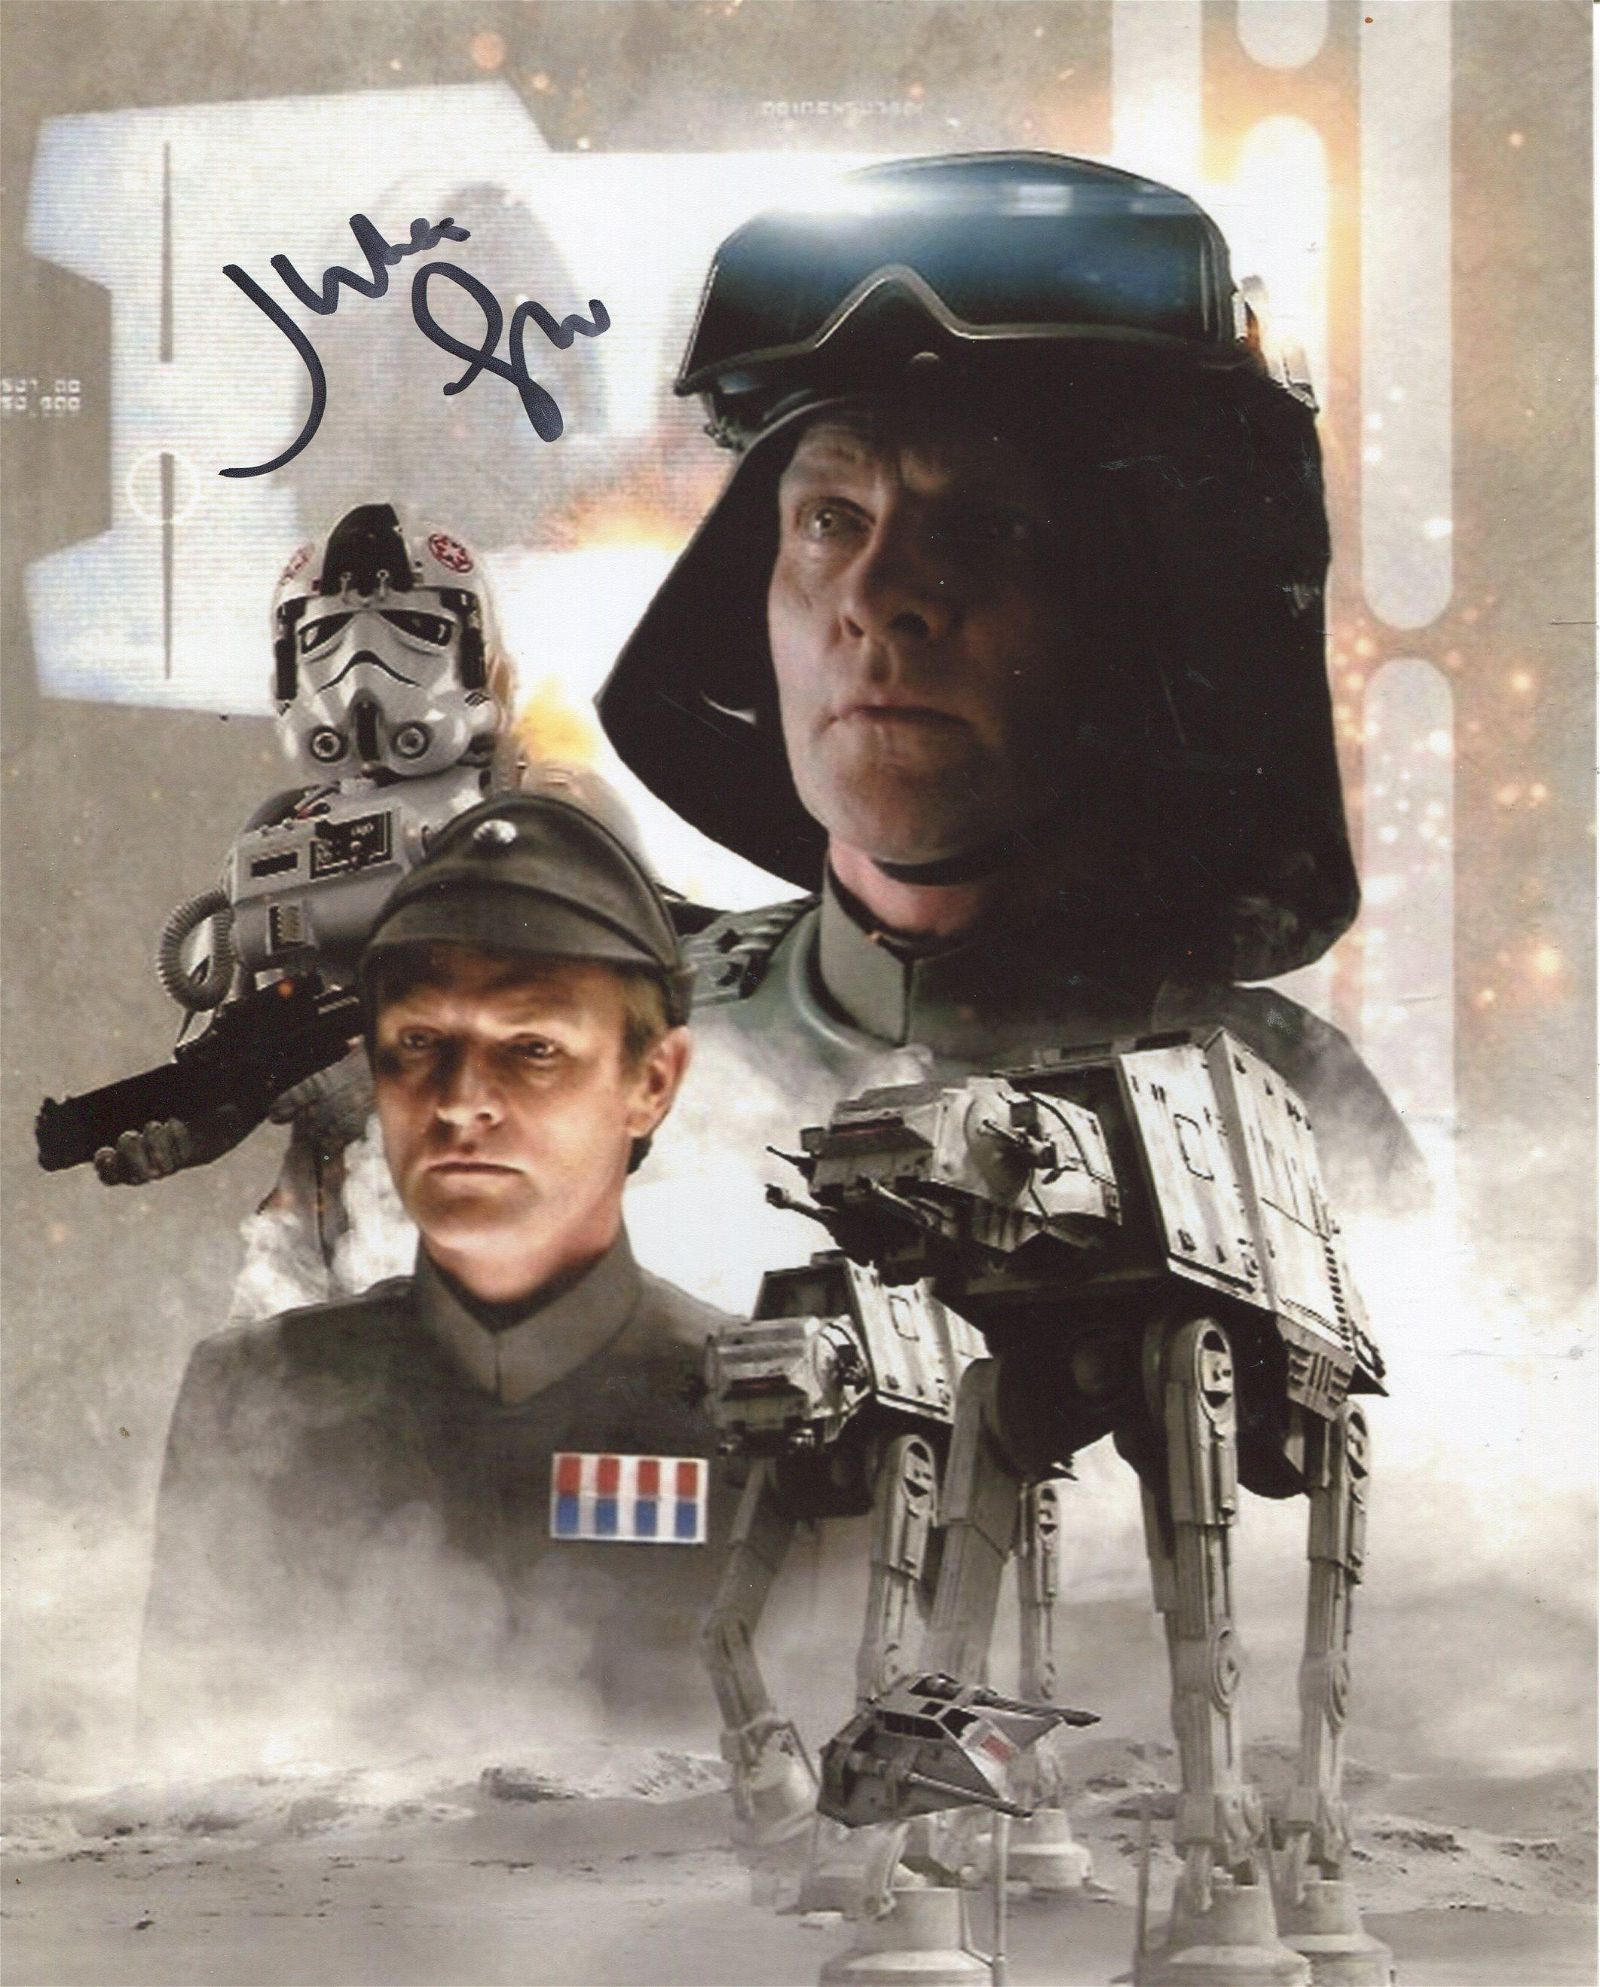 STAR WARS 8x10 movie montage photo signed by actor